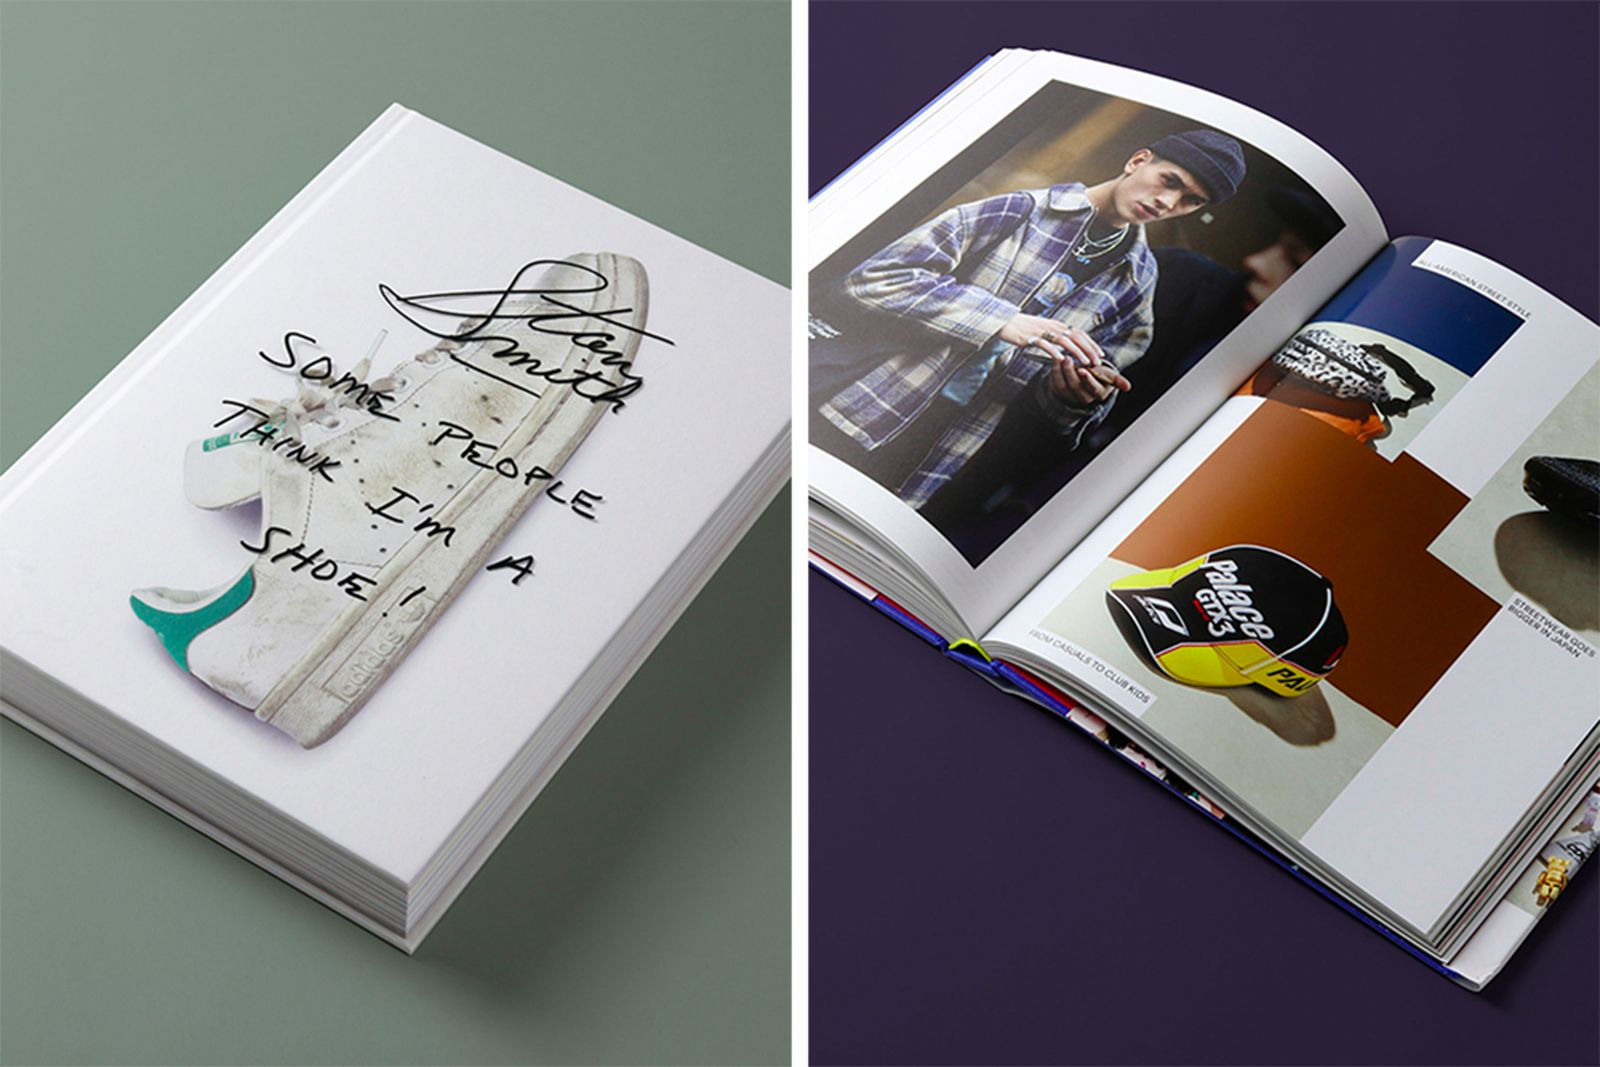 5 Essential Coffee Table Books Every Streetwear Lover Should Own